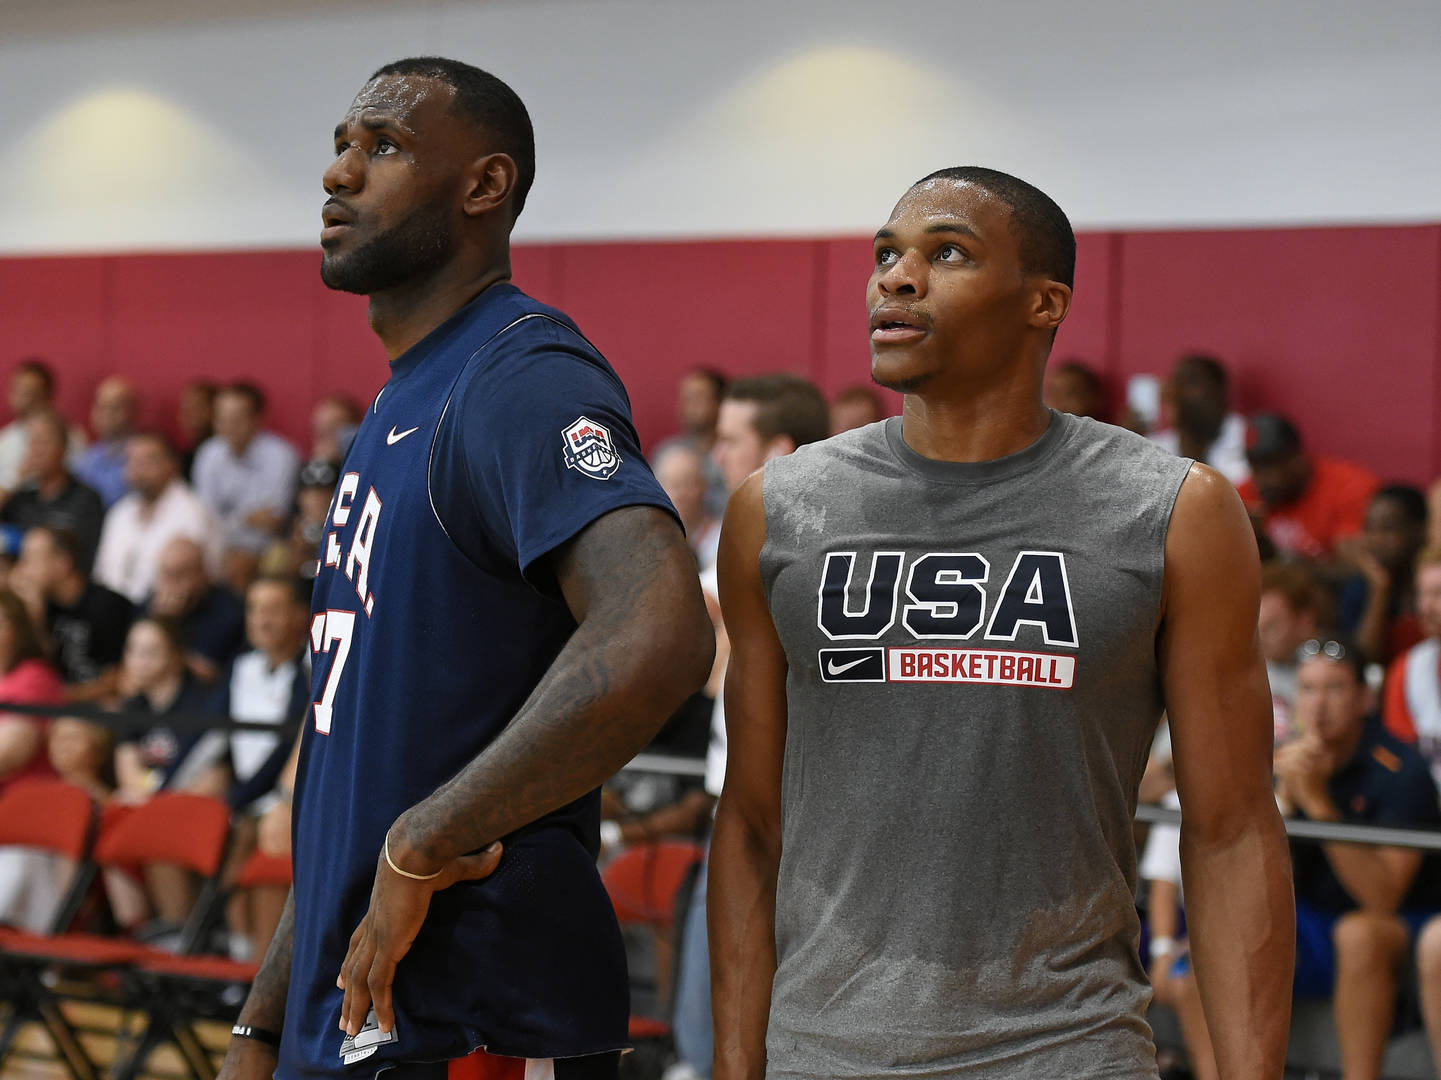 LeBron James & Russell Westbrook